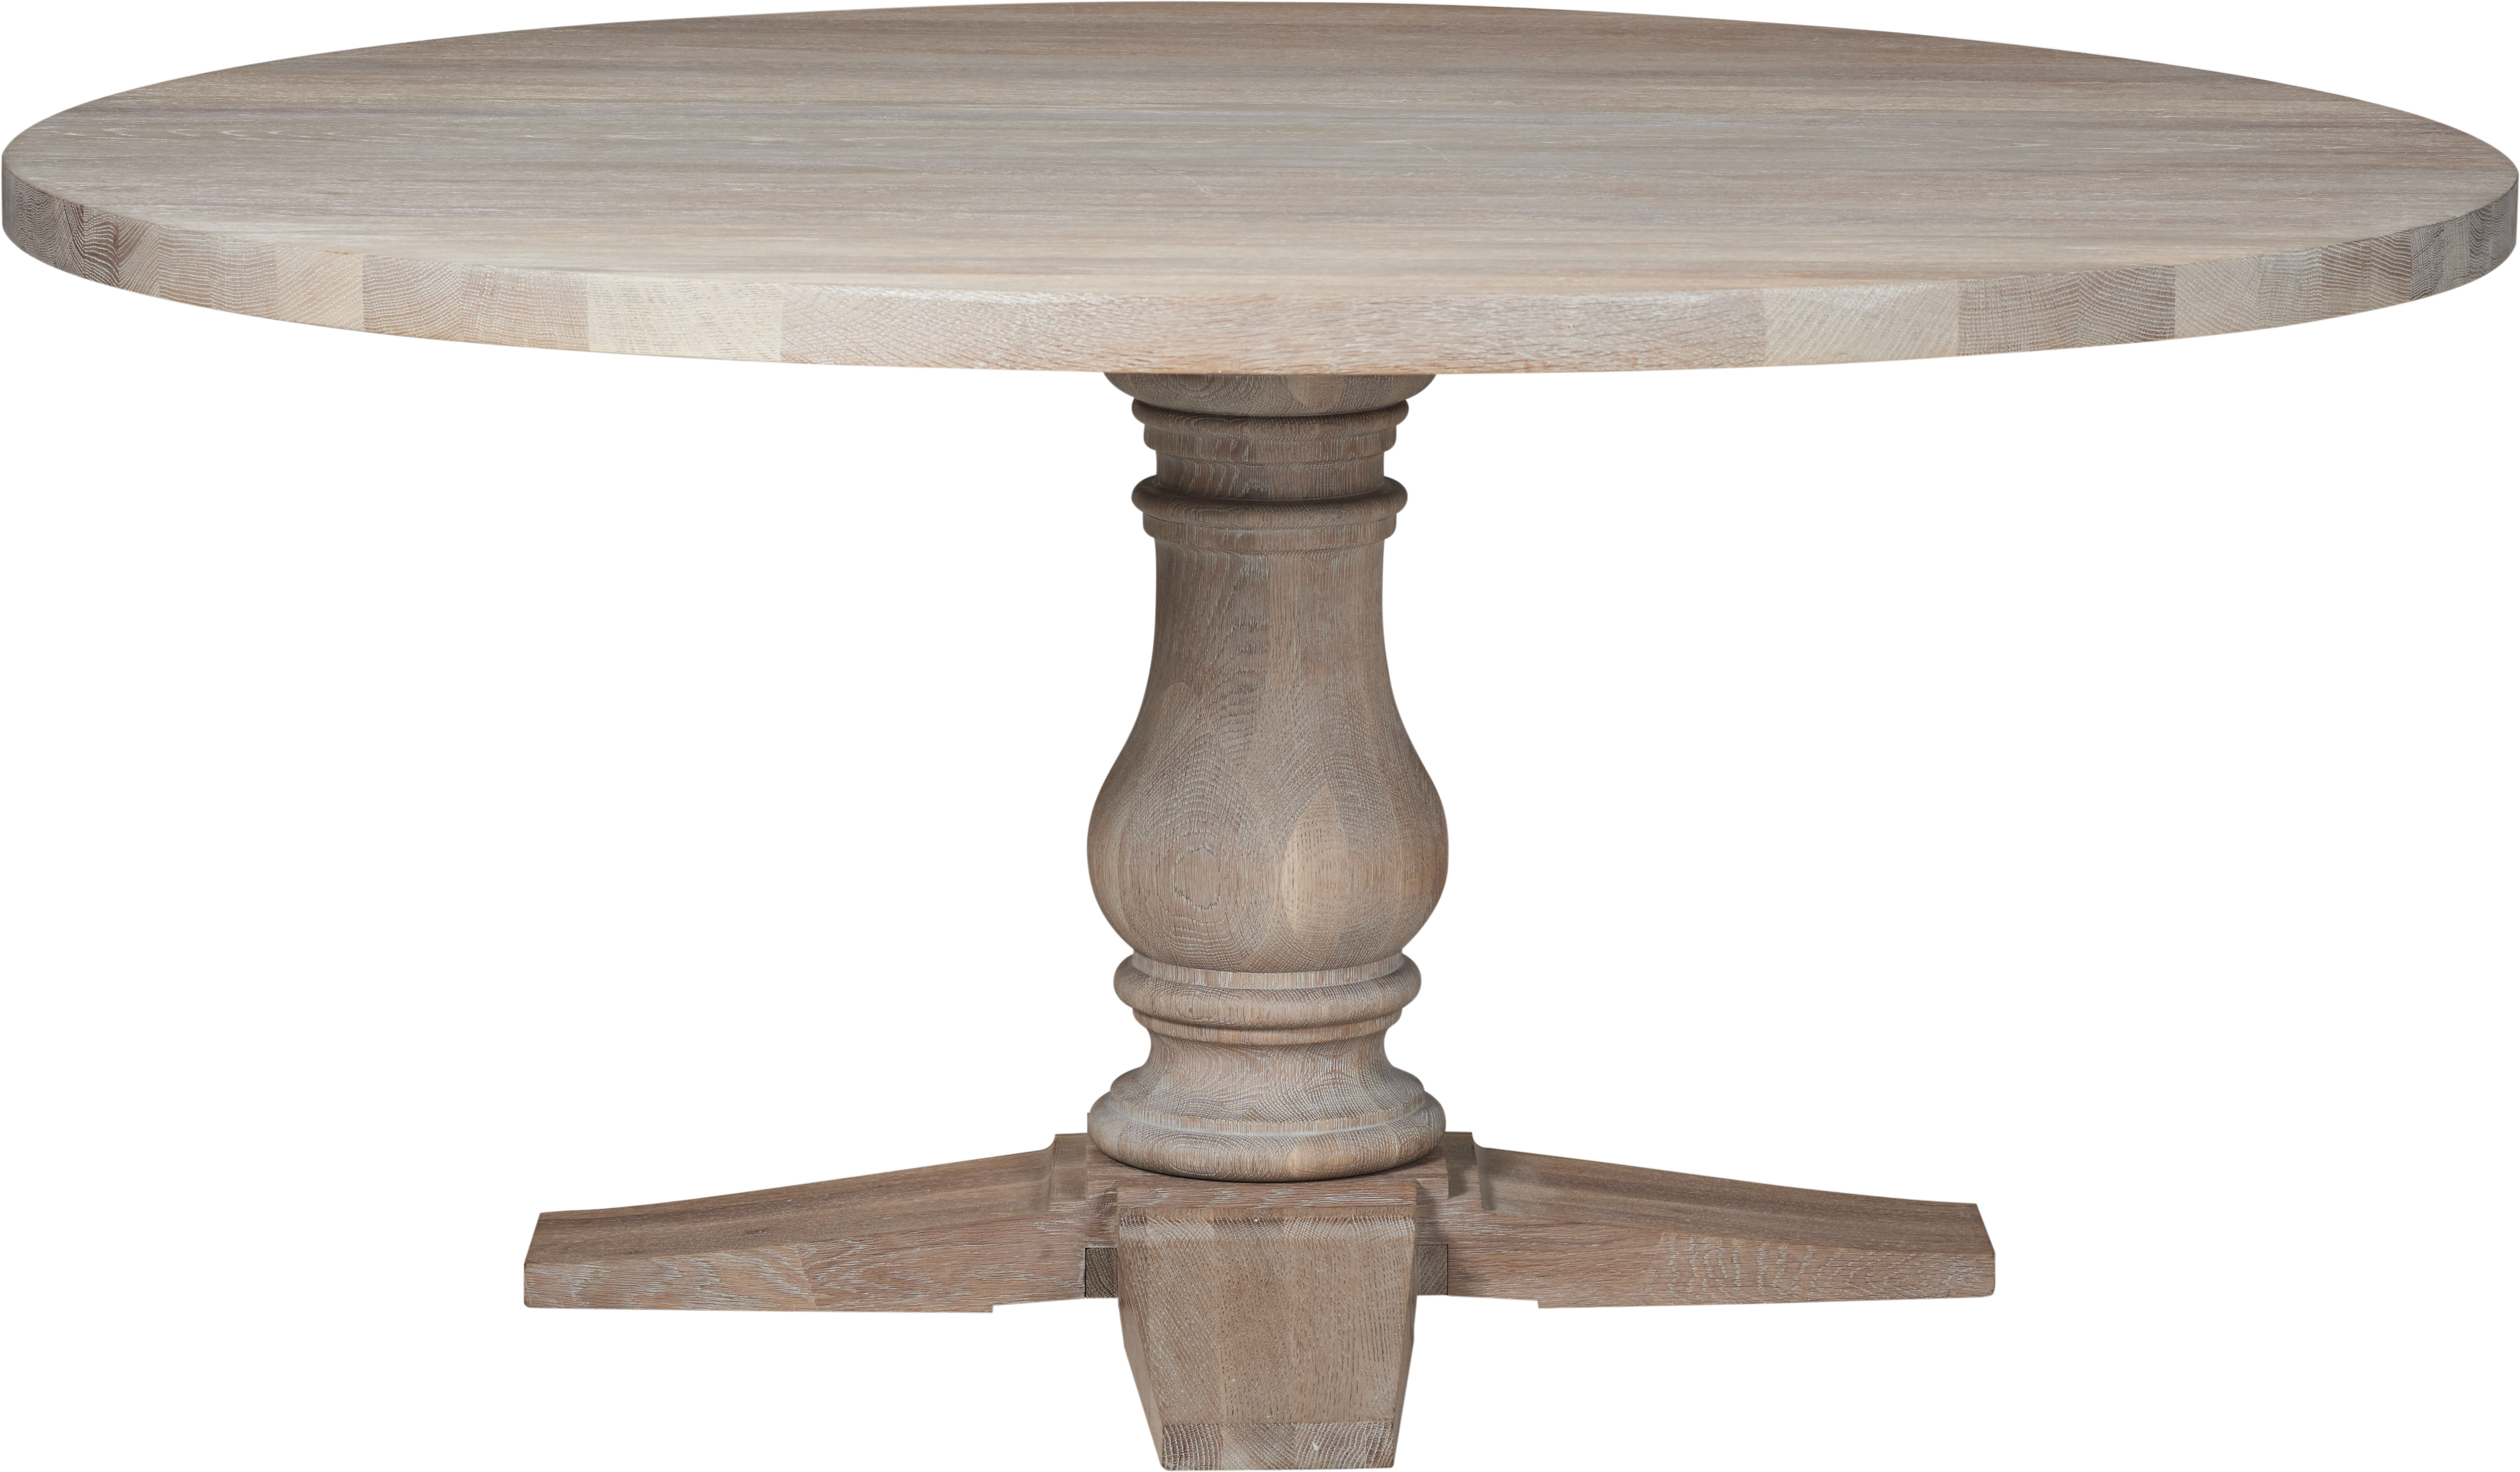 Balmoral Round Dining Table